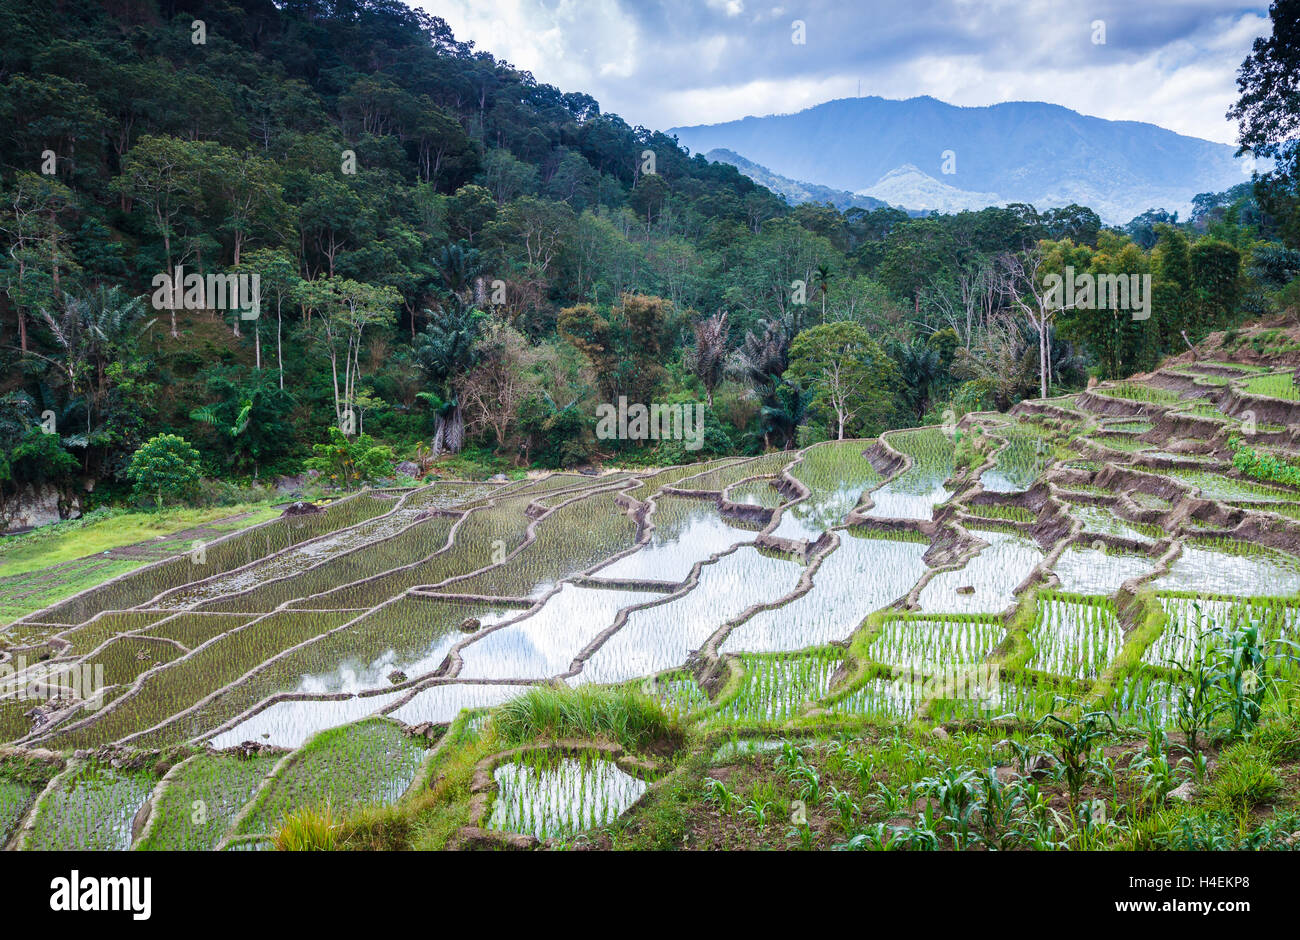 Rice terraces and tropical forest. - Stock Image